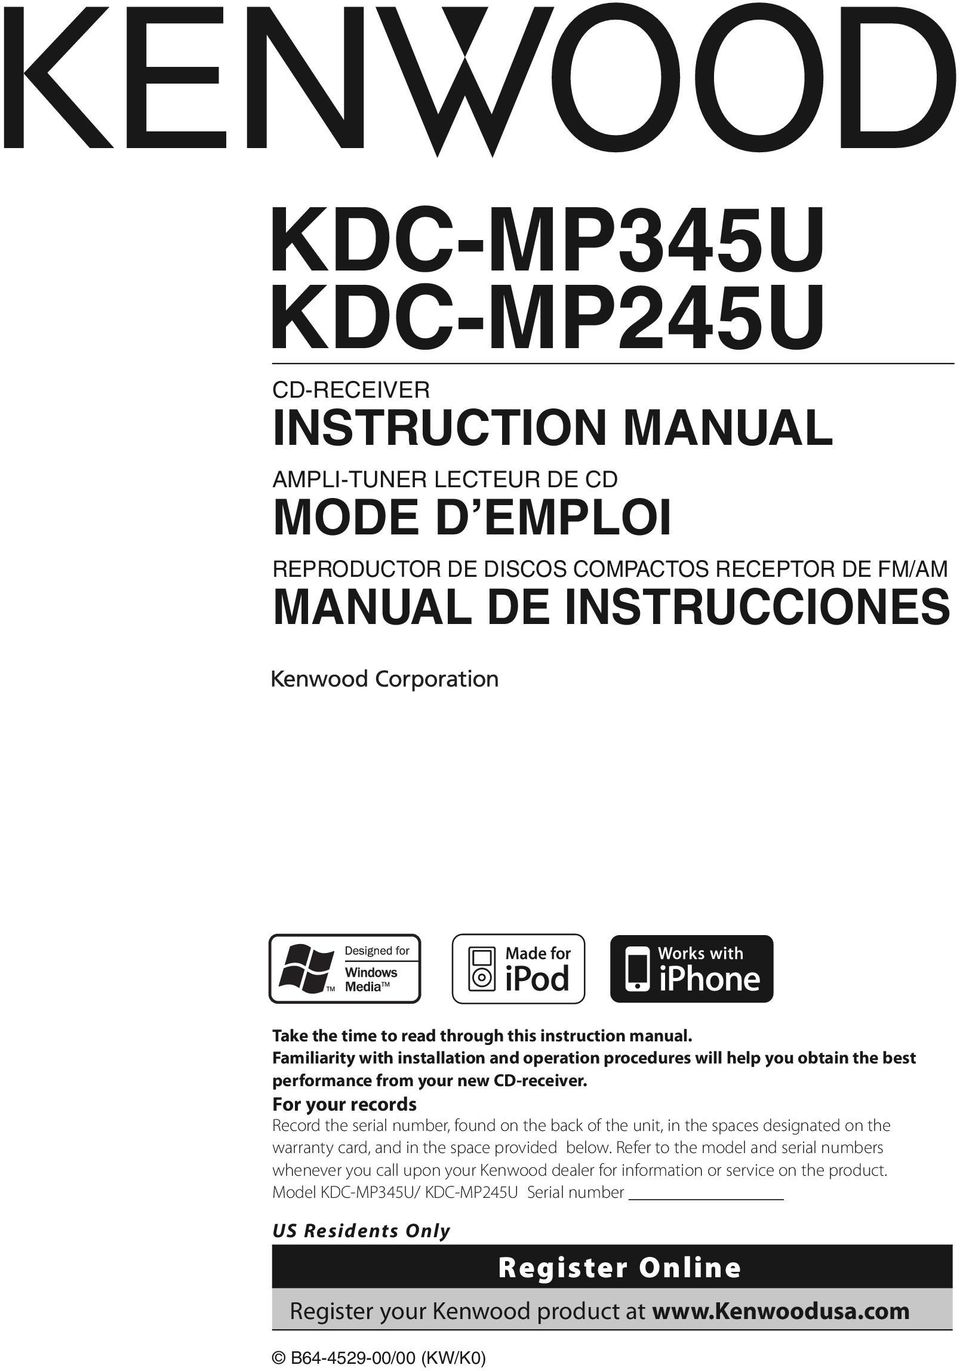 Kdc Mp345u Mp245u Pdf Kenwood Mp338 Wiring Diagram Colors For Your Records Record The Serial Number Found On Back Of Unit